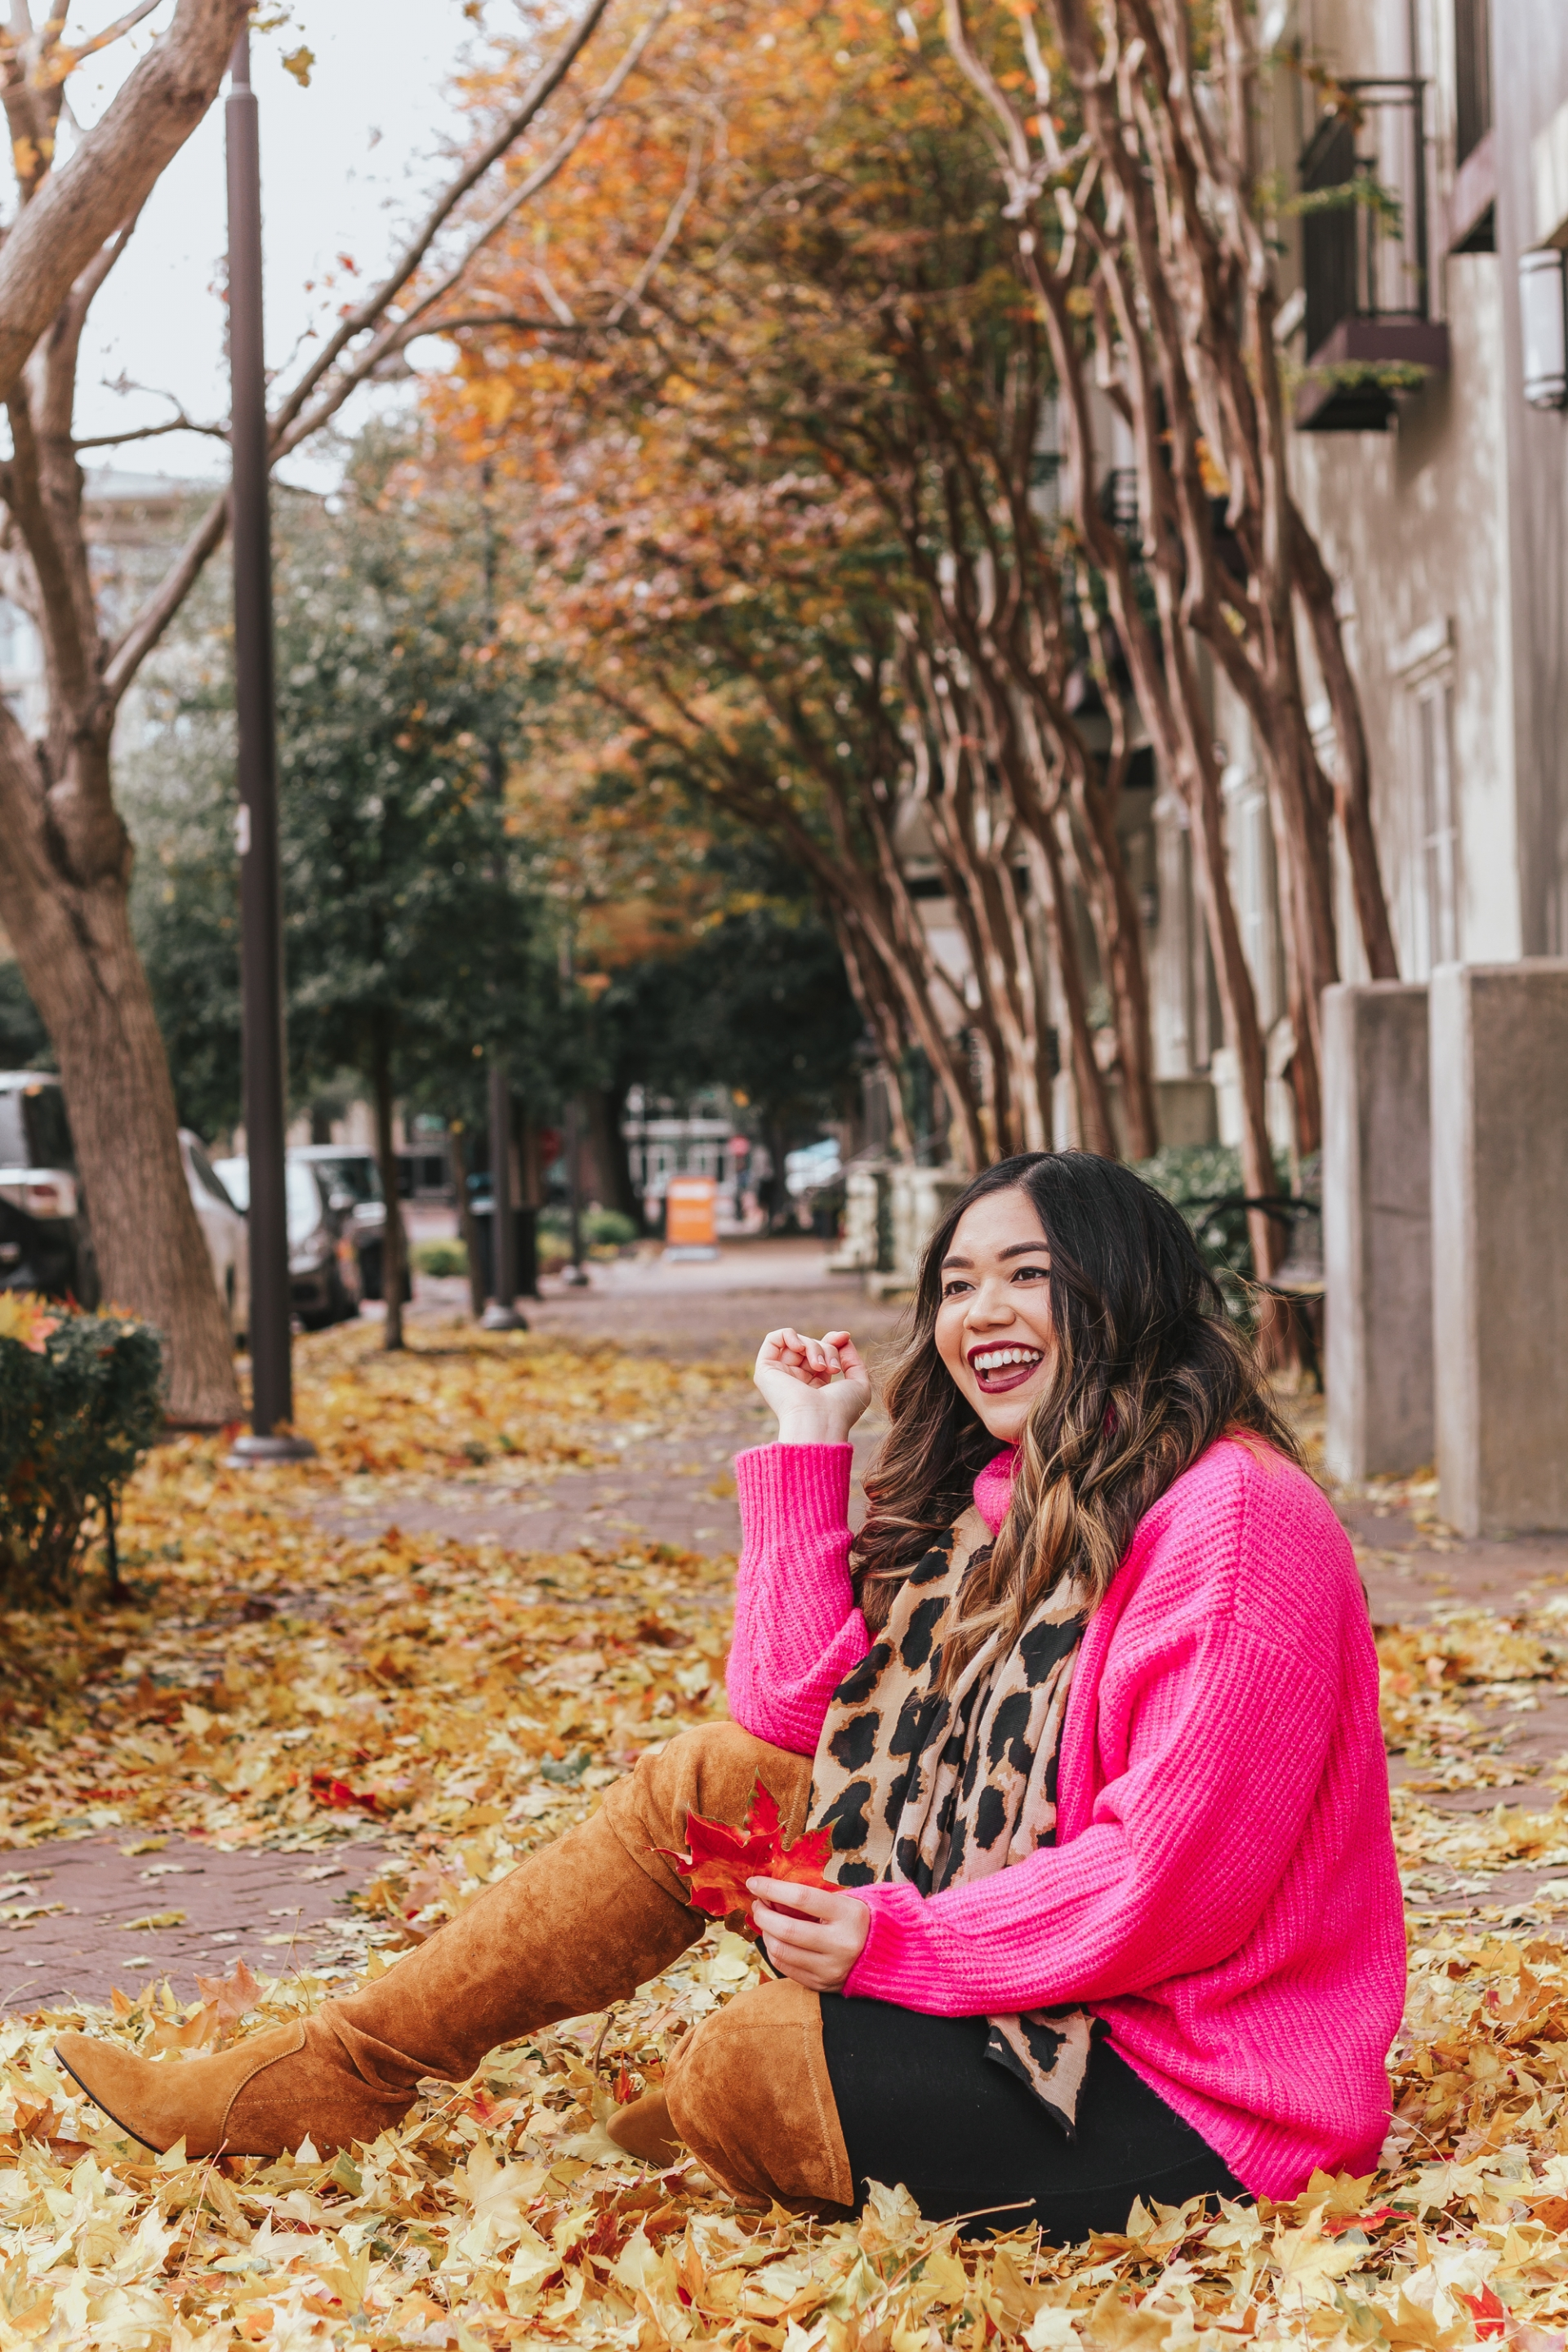 Goodnight Macaroon Ali Oversized Turtleneck Sweater Marlo Tan Over The Knee Suede Leather Boots Nordstrom BP Leopard Print Scarf Express Supersoft Ankle Leggings Shein Faux Pearl Decor Chain Bag How to Style Hot Pink and Leopard Without Looking Tacky But Chic Fall Leaves Fall Foliage Fall Outfit Ideas